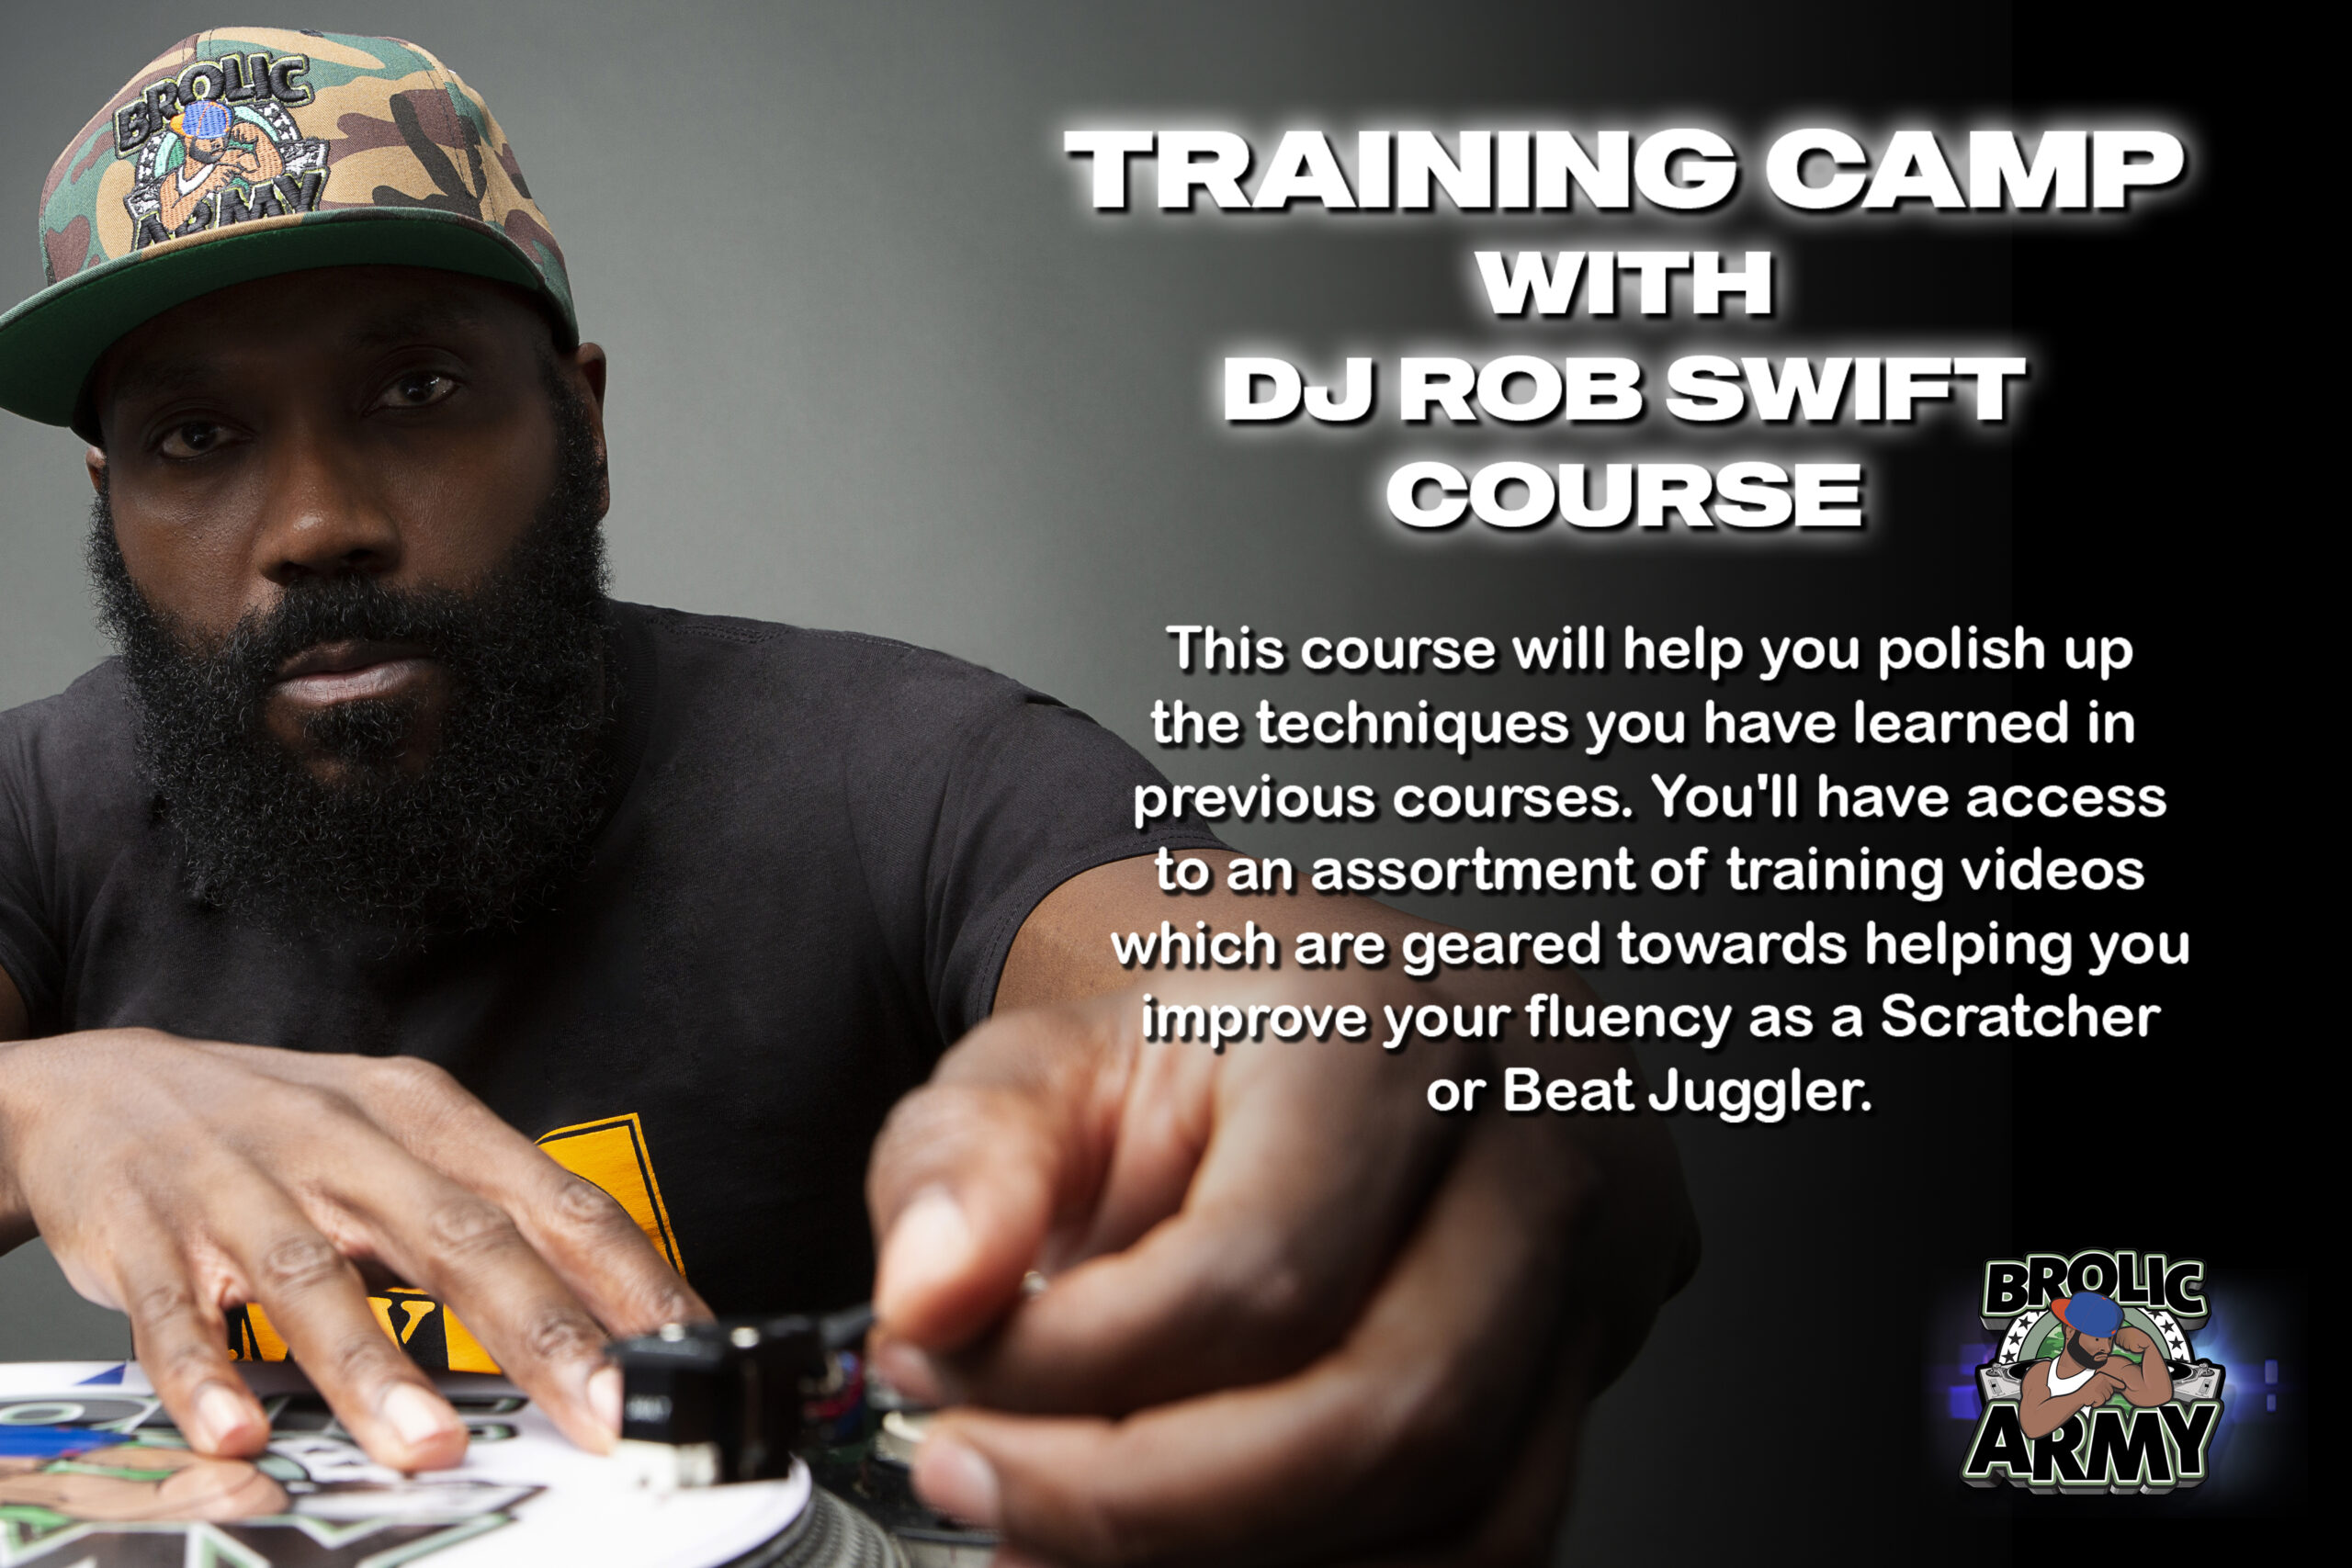 Training Camp with DJ Rob Swift Course Group